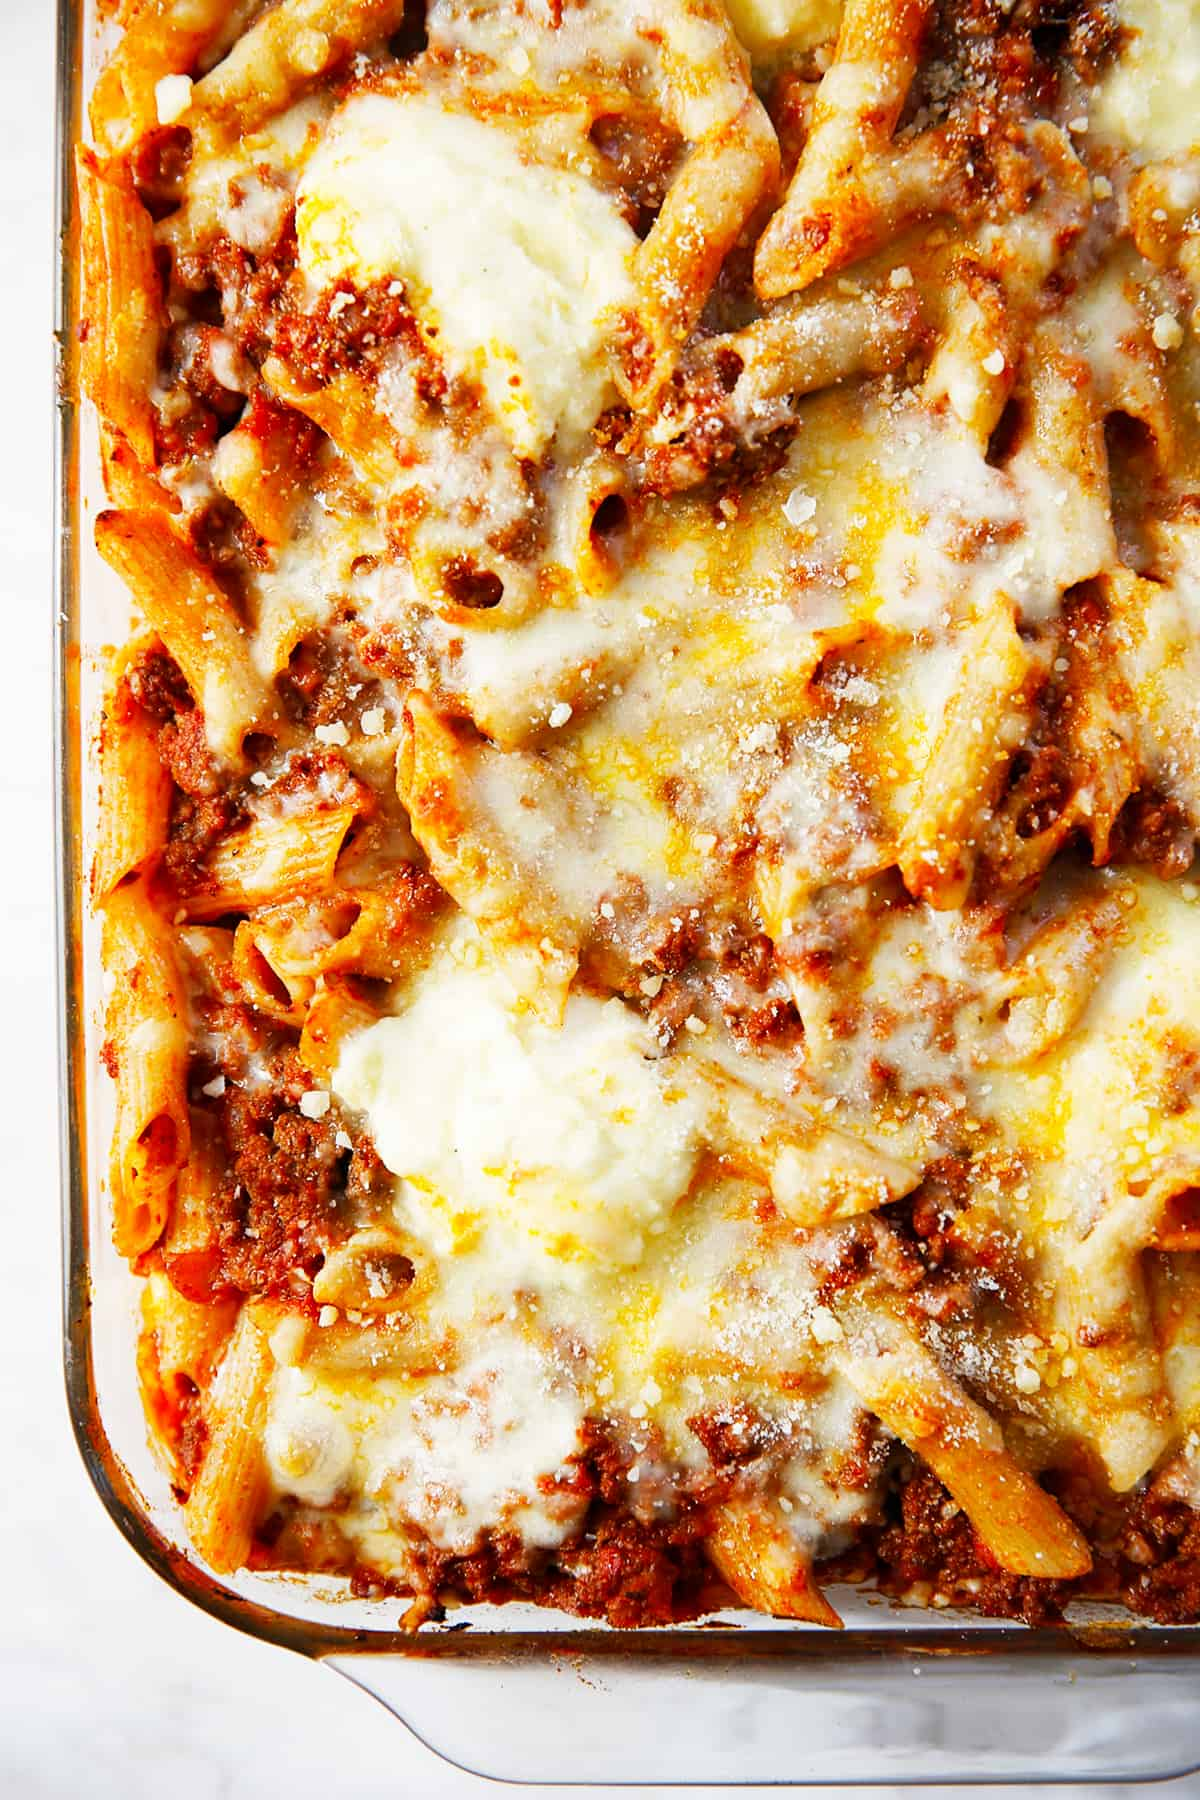 Baked ziti in a dish.